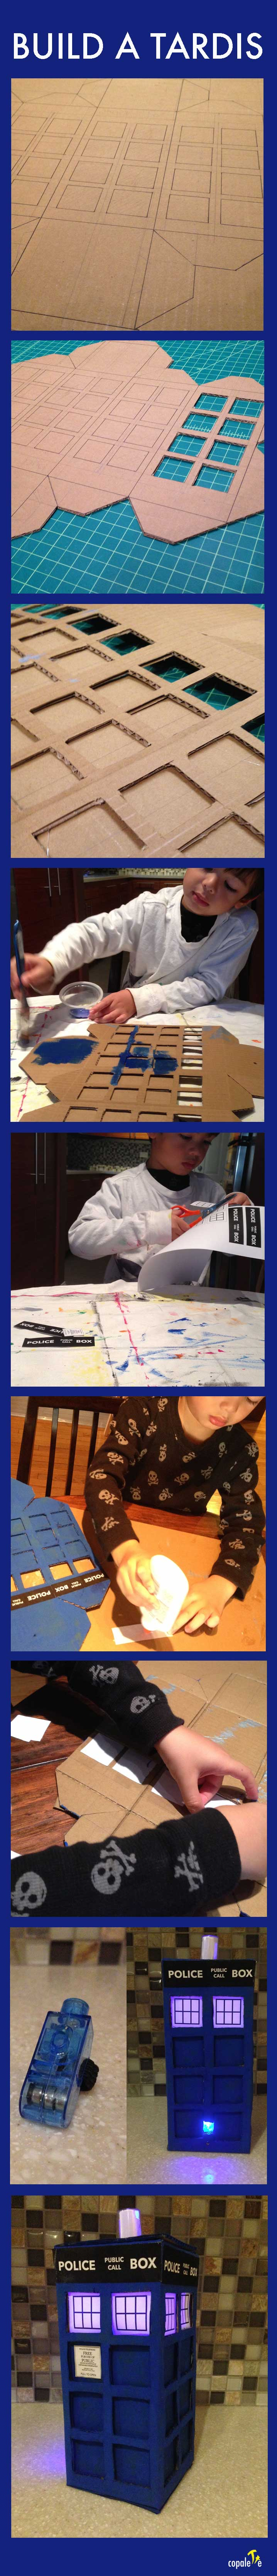 Build A Tardis | Kids' Activities Inspired by The Doctor